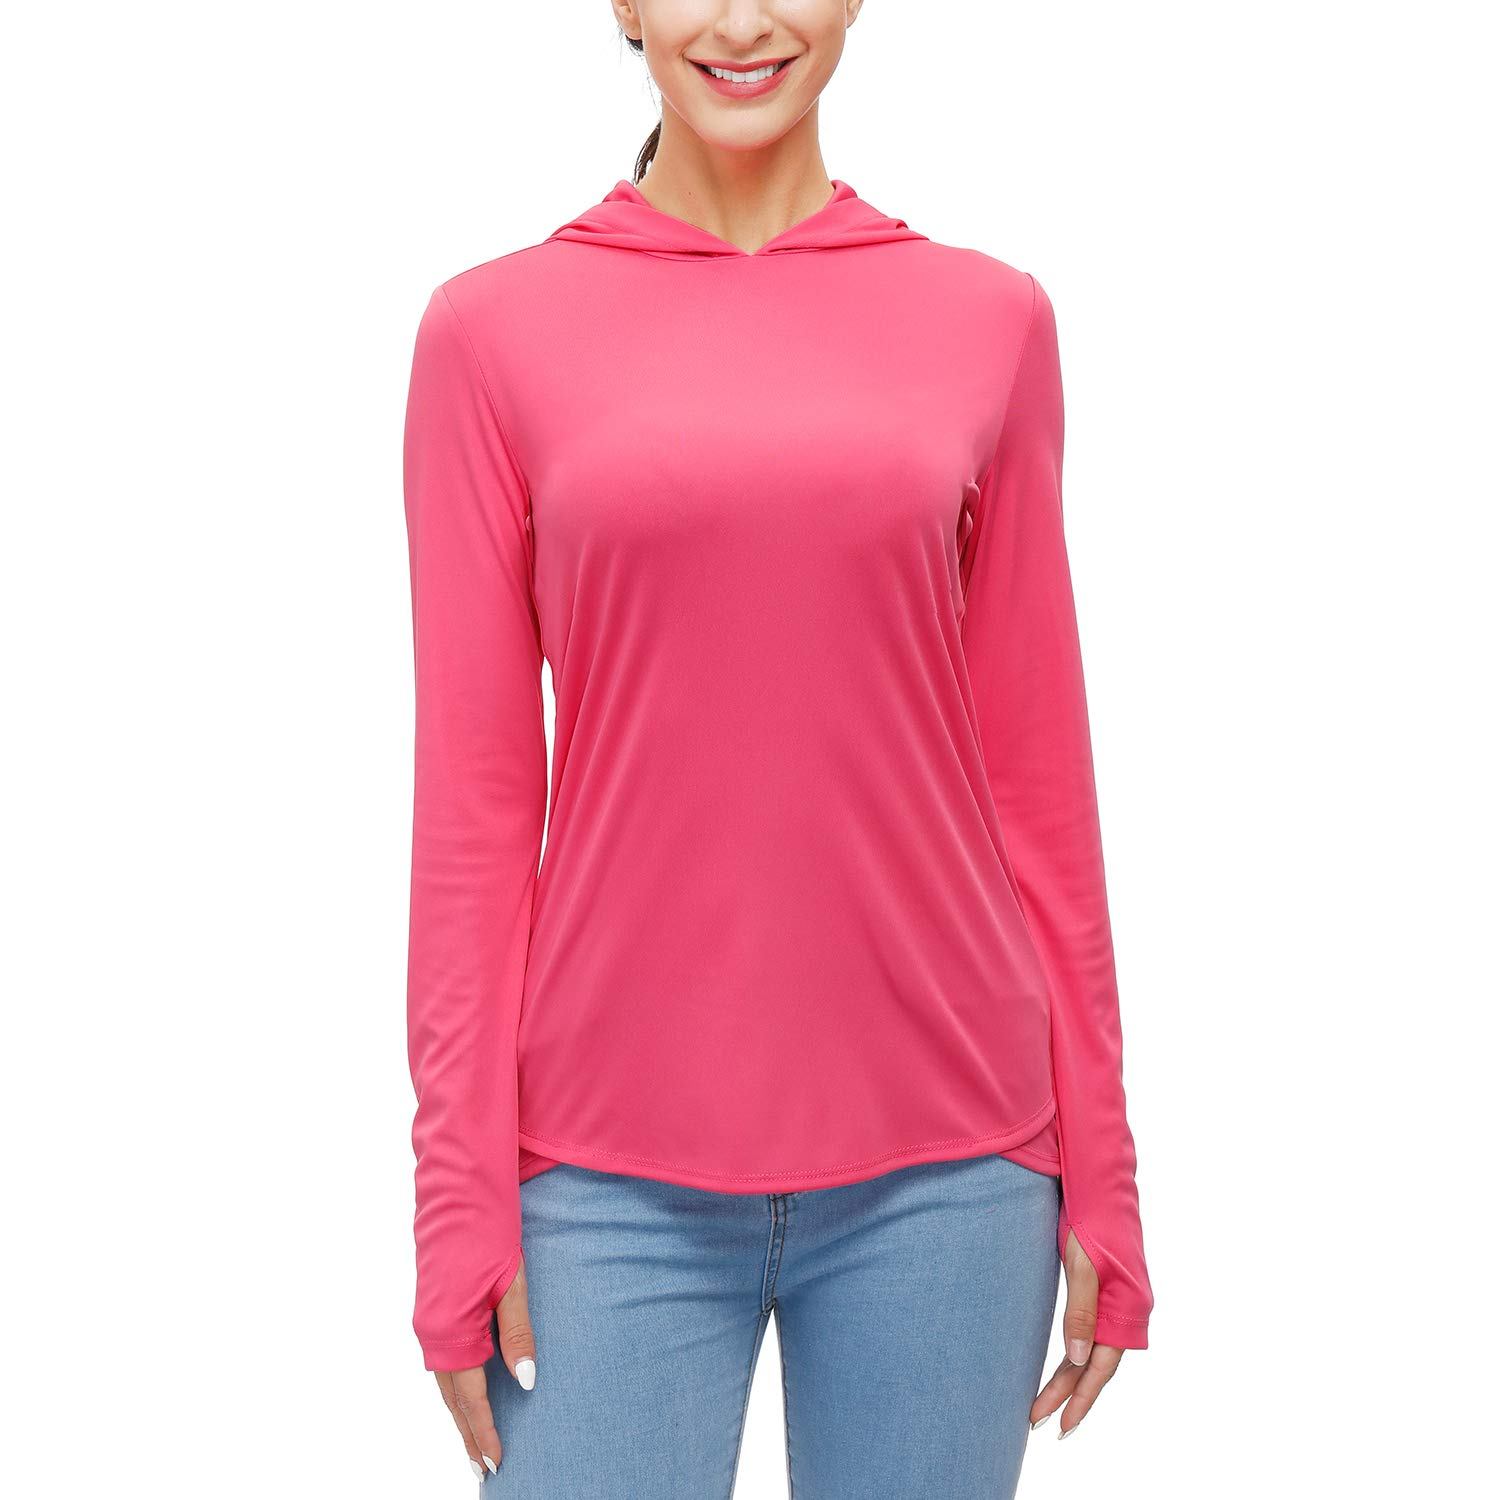 Women's UPF 50+ Sun Protection Hoodies Long Sleeve Outdoor Hiking T-Shirts with Thumb Holes